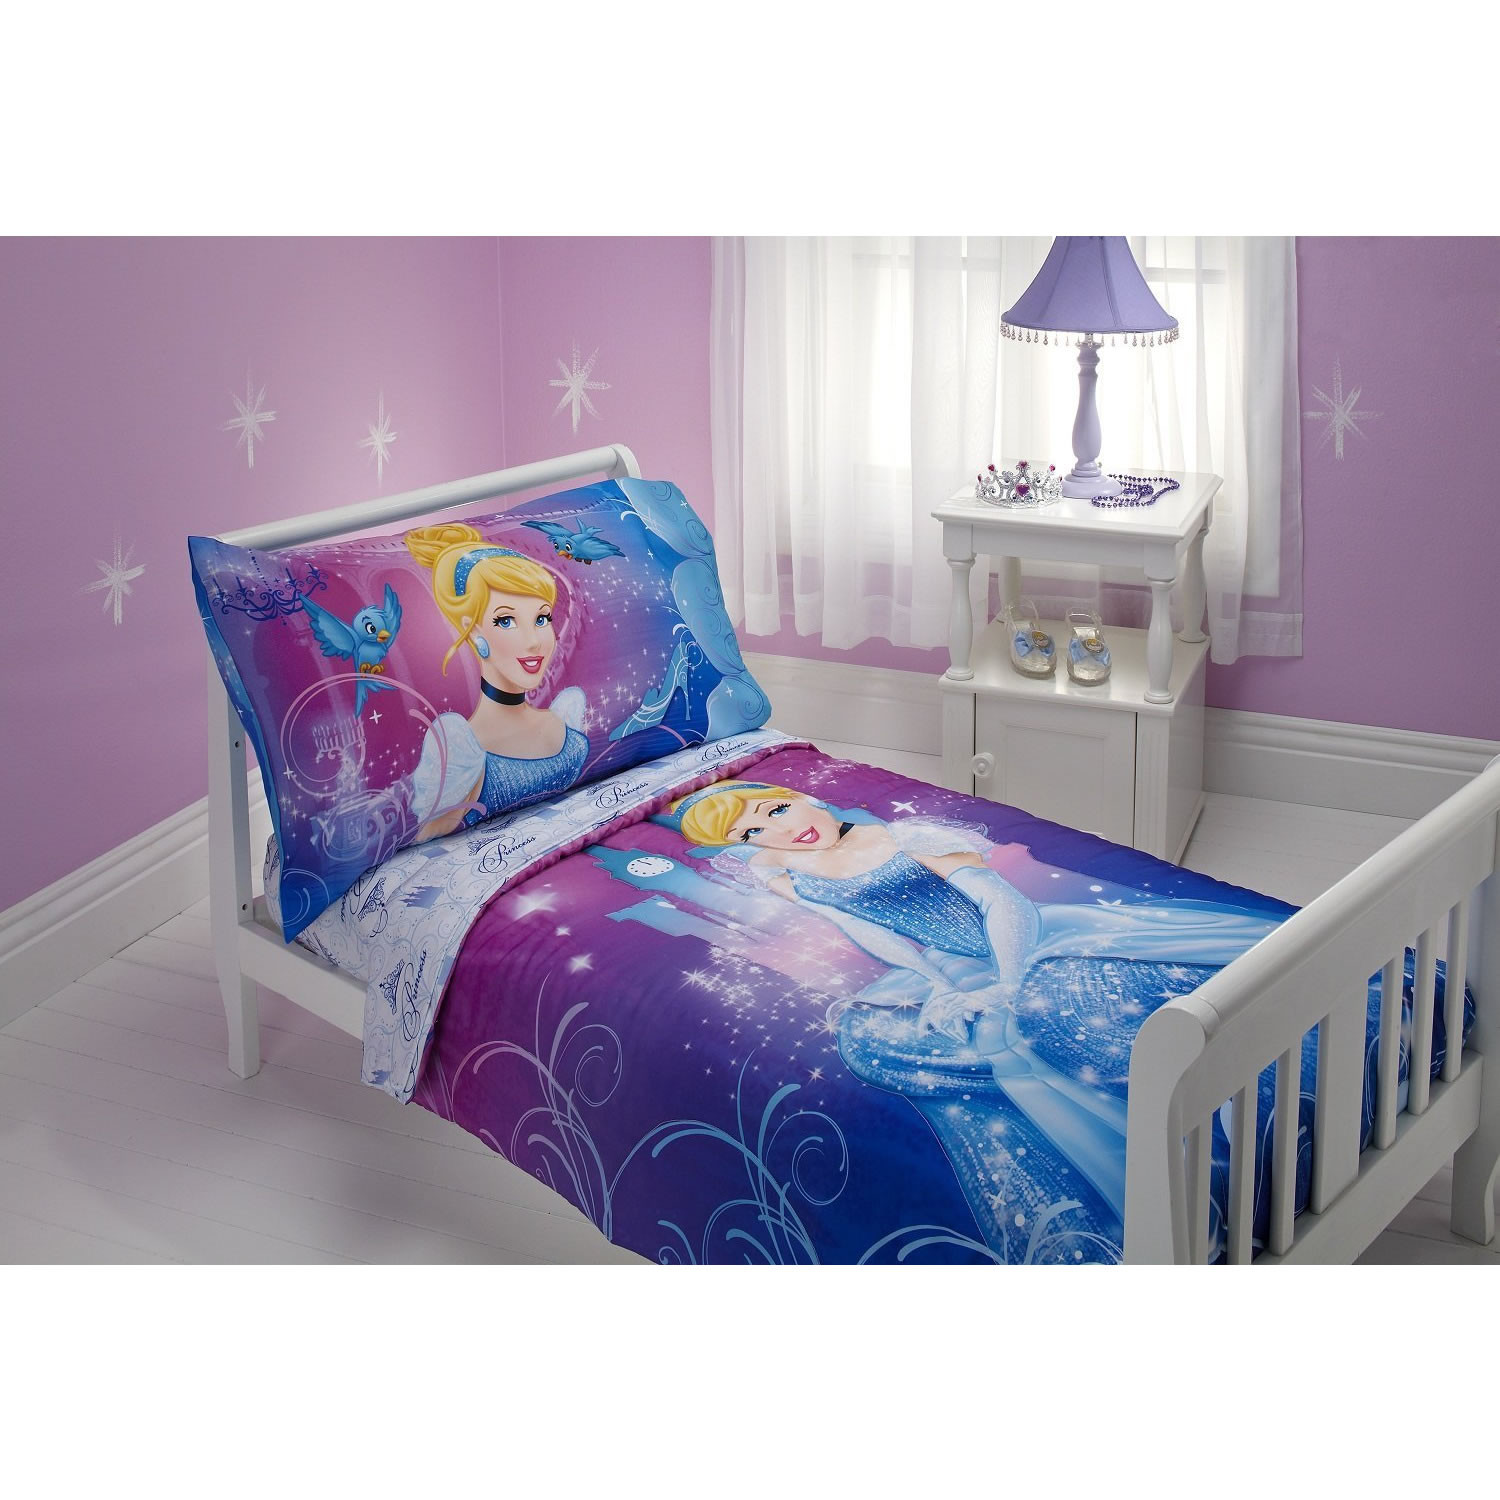 Disney Cinderella Toddler Bedding Set